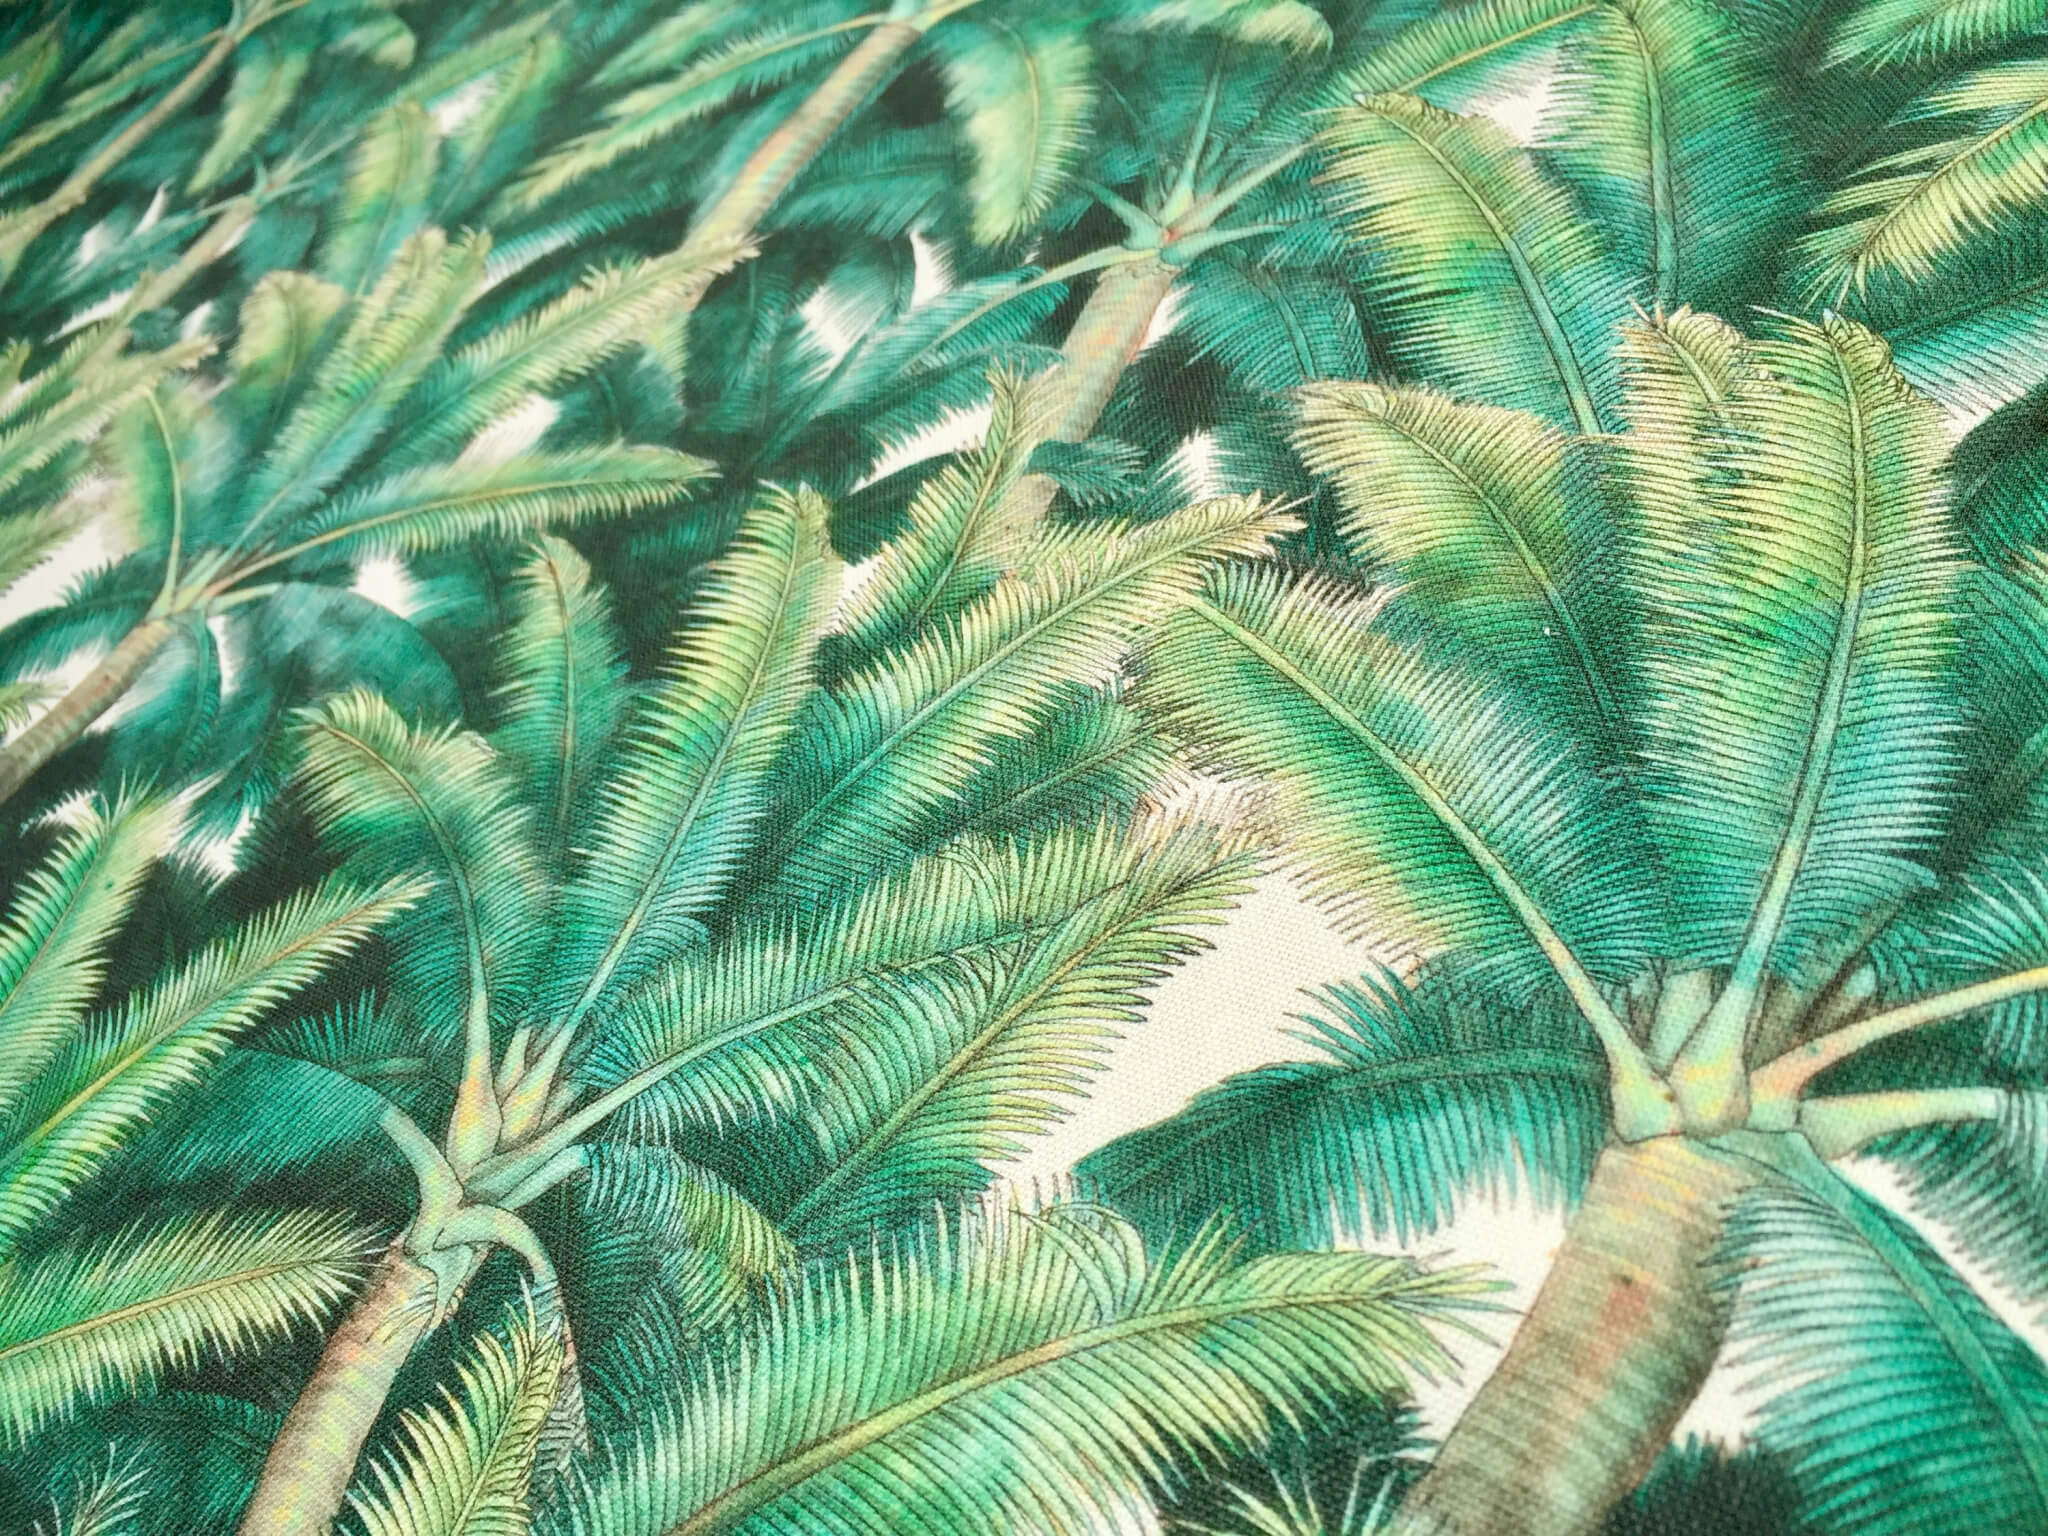 palms-palm-fronds-leaf-tree-fabric-tropical-leaves-material-for-curtains-upholstery-home-decor-digital-print-fabric-136cm-54-wide-5d0e9fa11.jpg